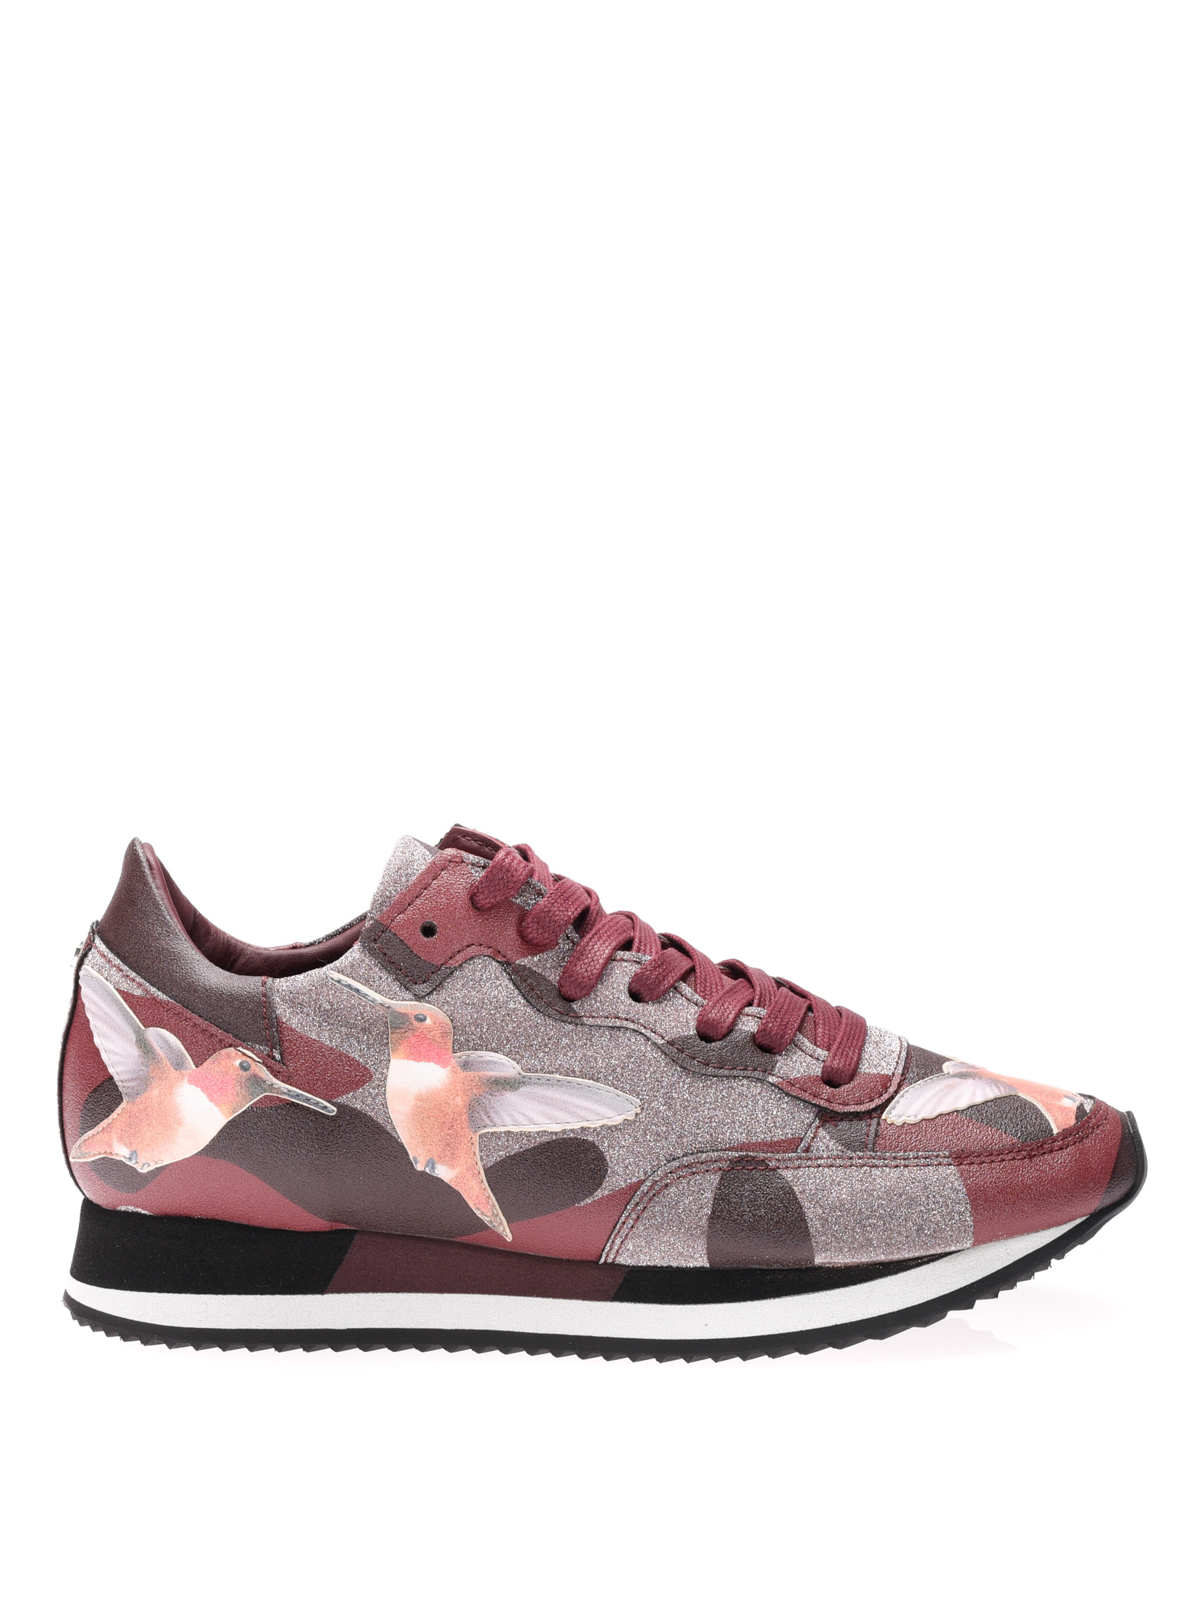 paradis camouflage sneakers by philippe model trainers ikrix. Black Bedroom Furniture Sets. Home Design Ideas